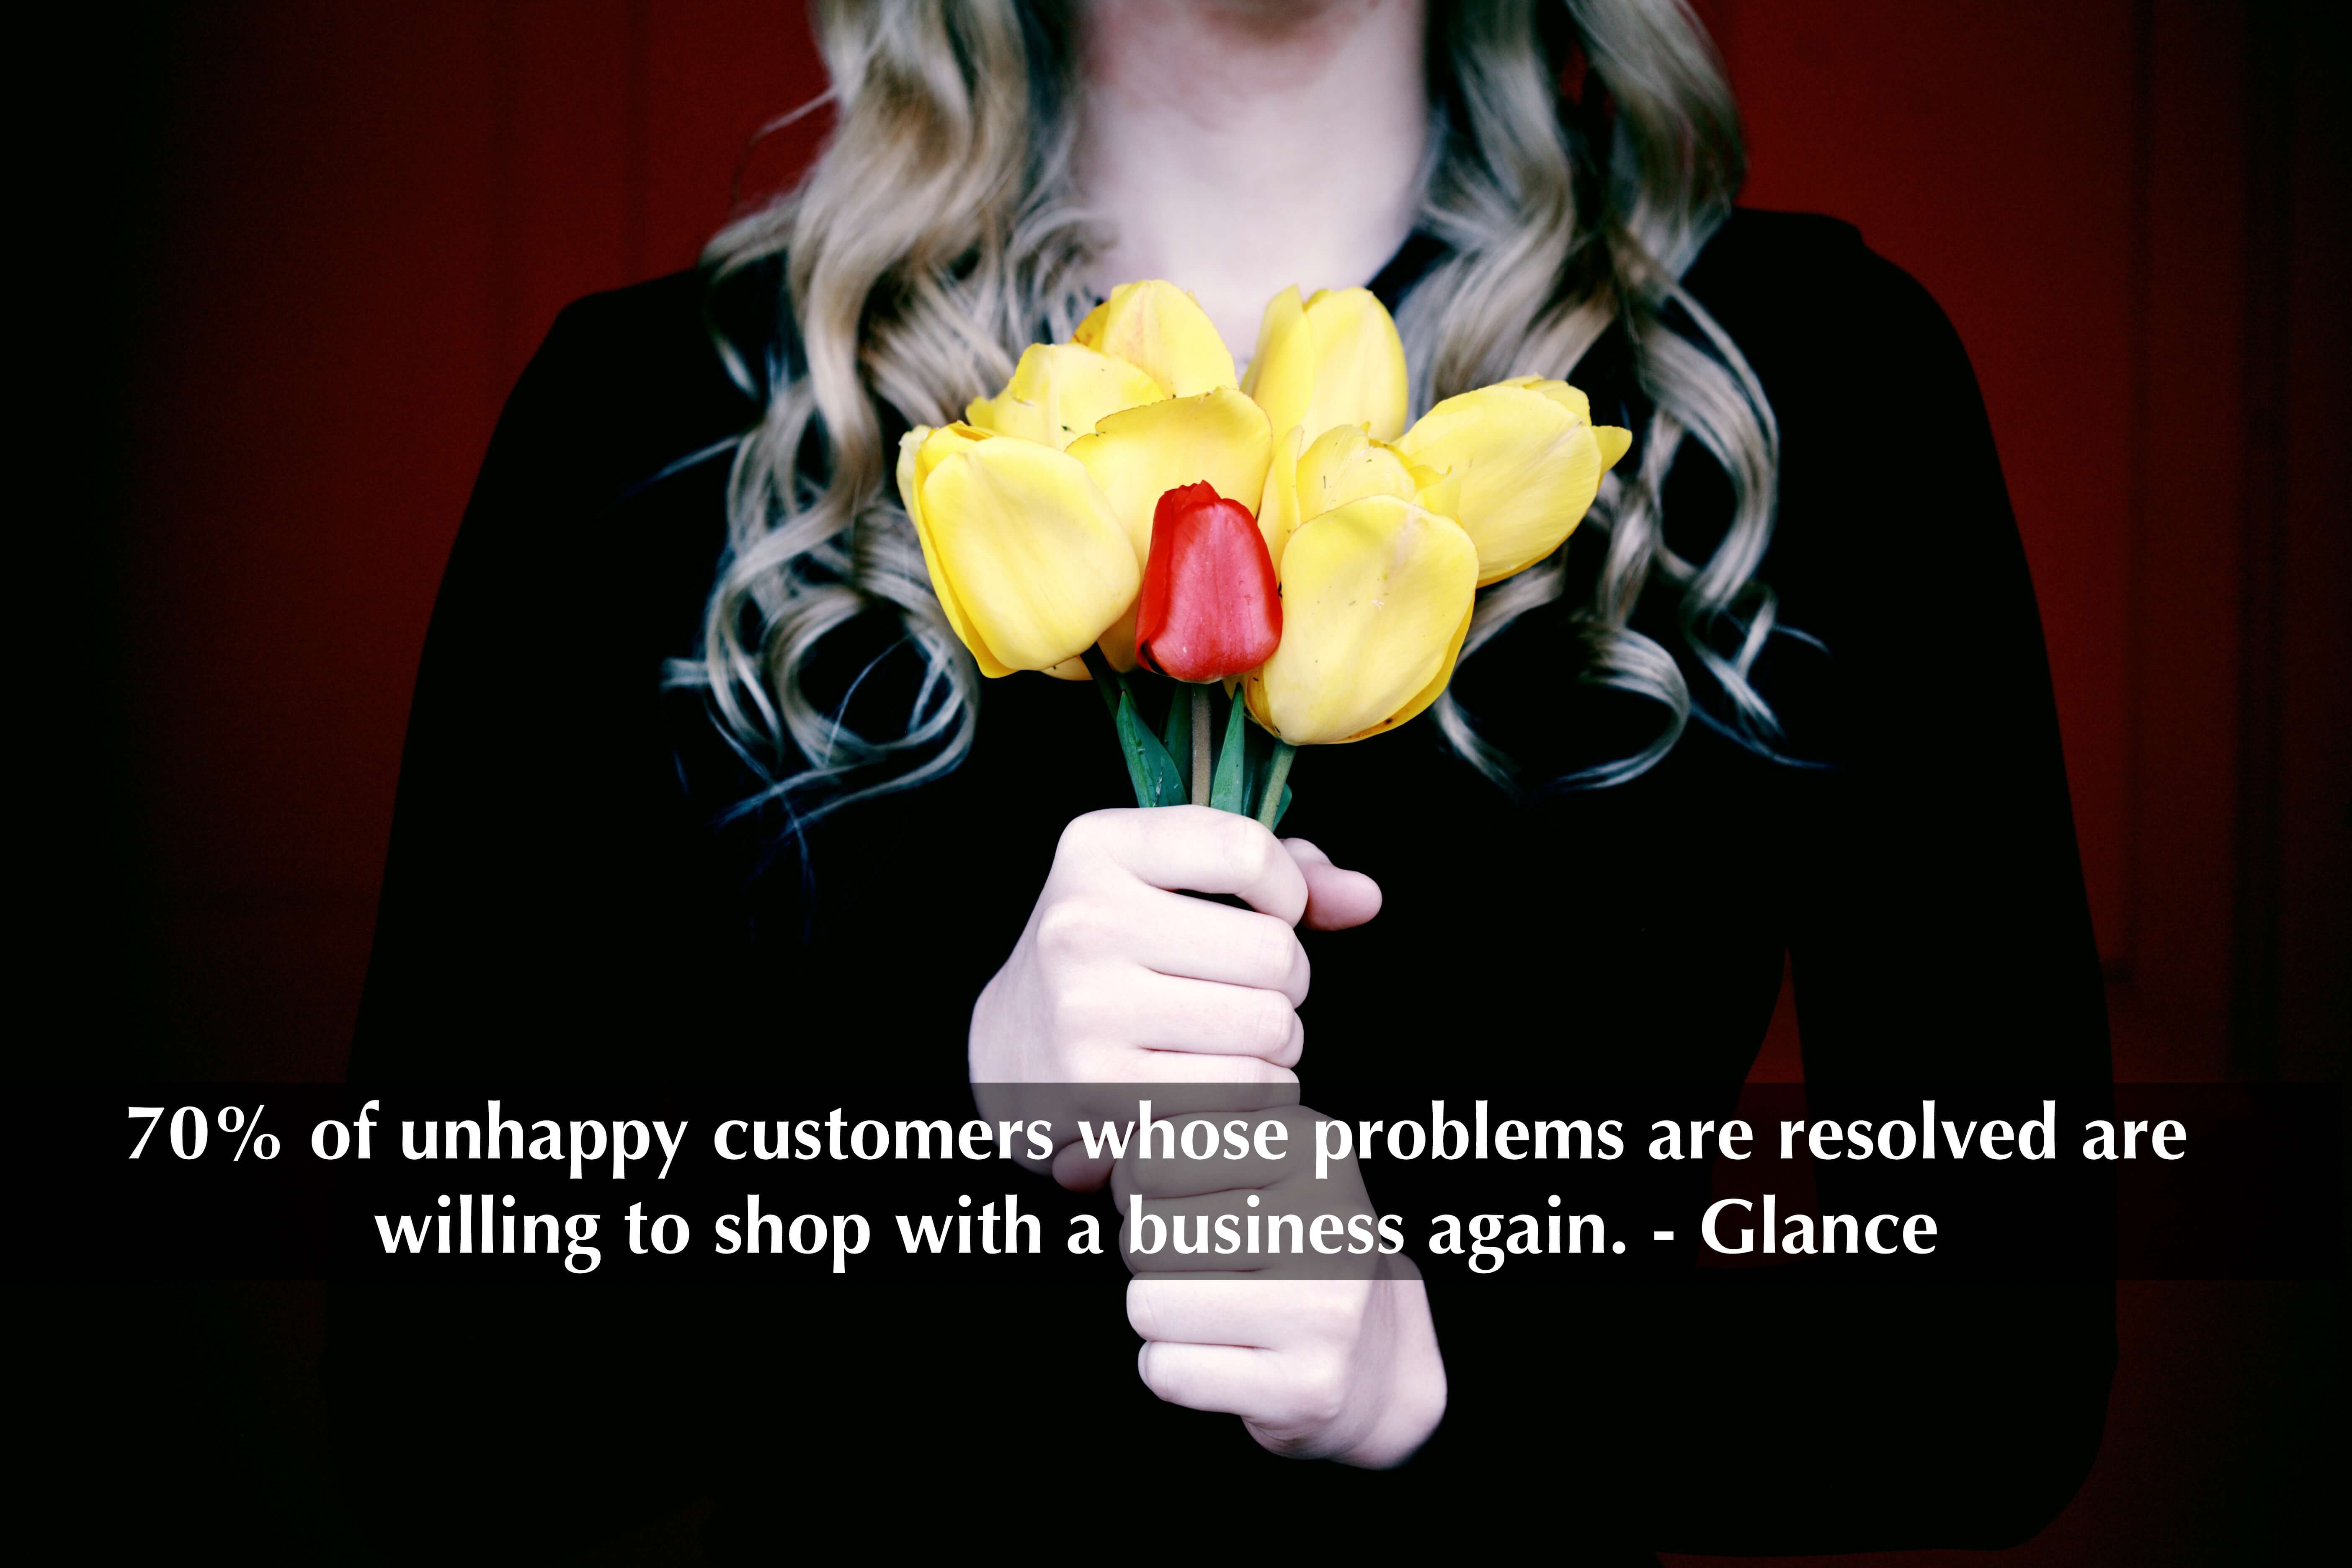 70% of unhappy customers whose problems are resolved are willing to shop with a business again. - Glance